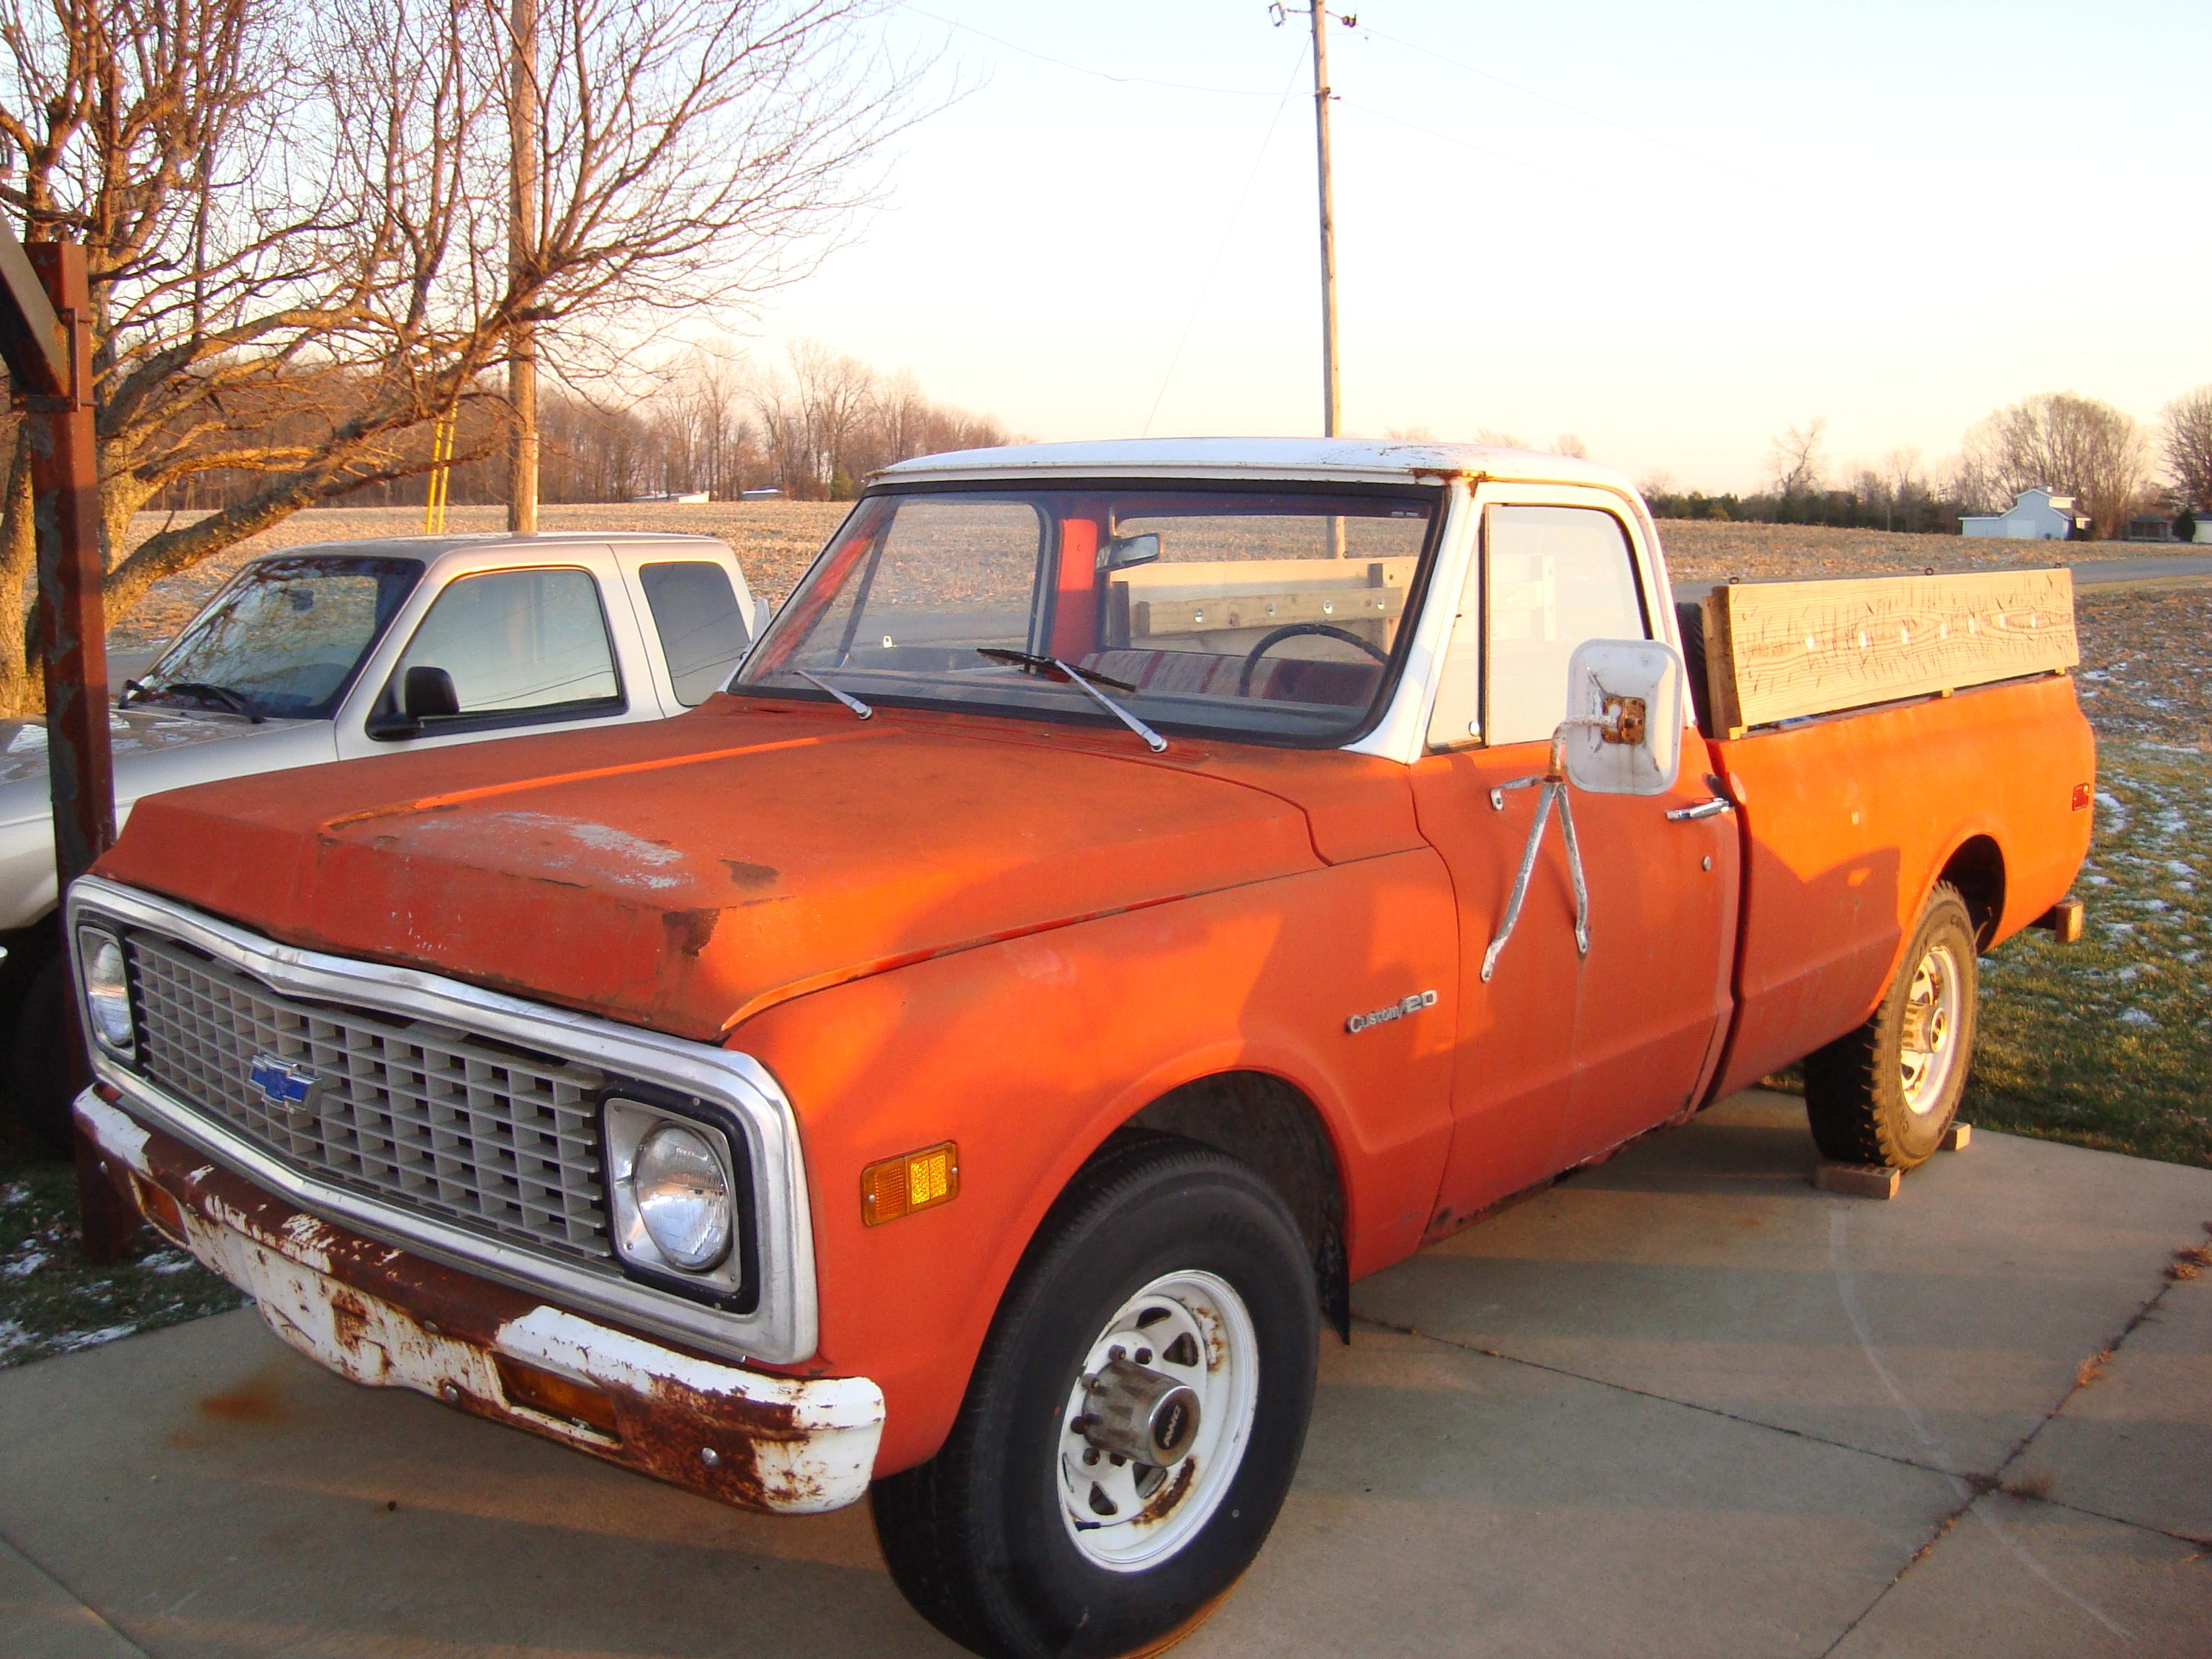 air_ride_CAVI86 1971 Chevrolet C/K Pick-Up 14116702